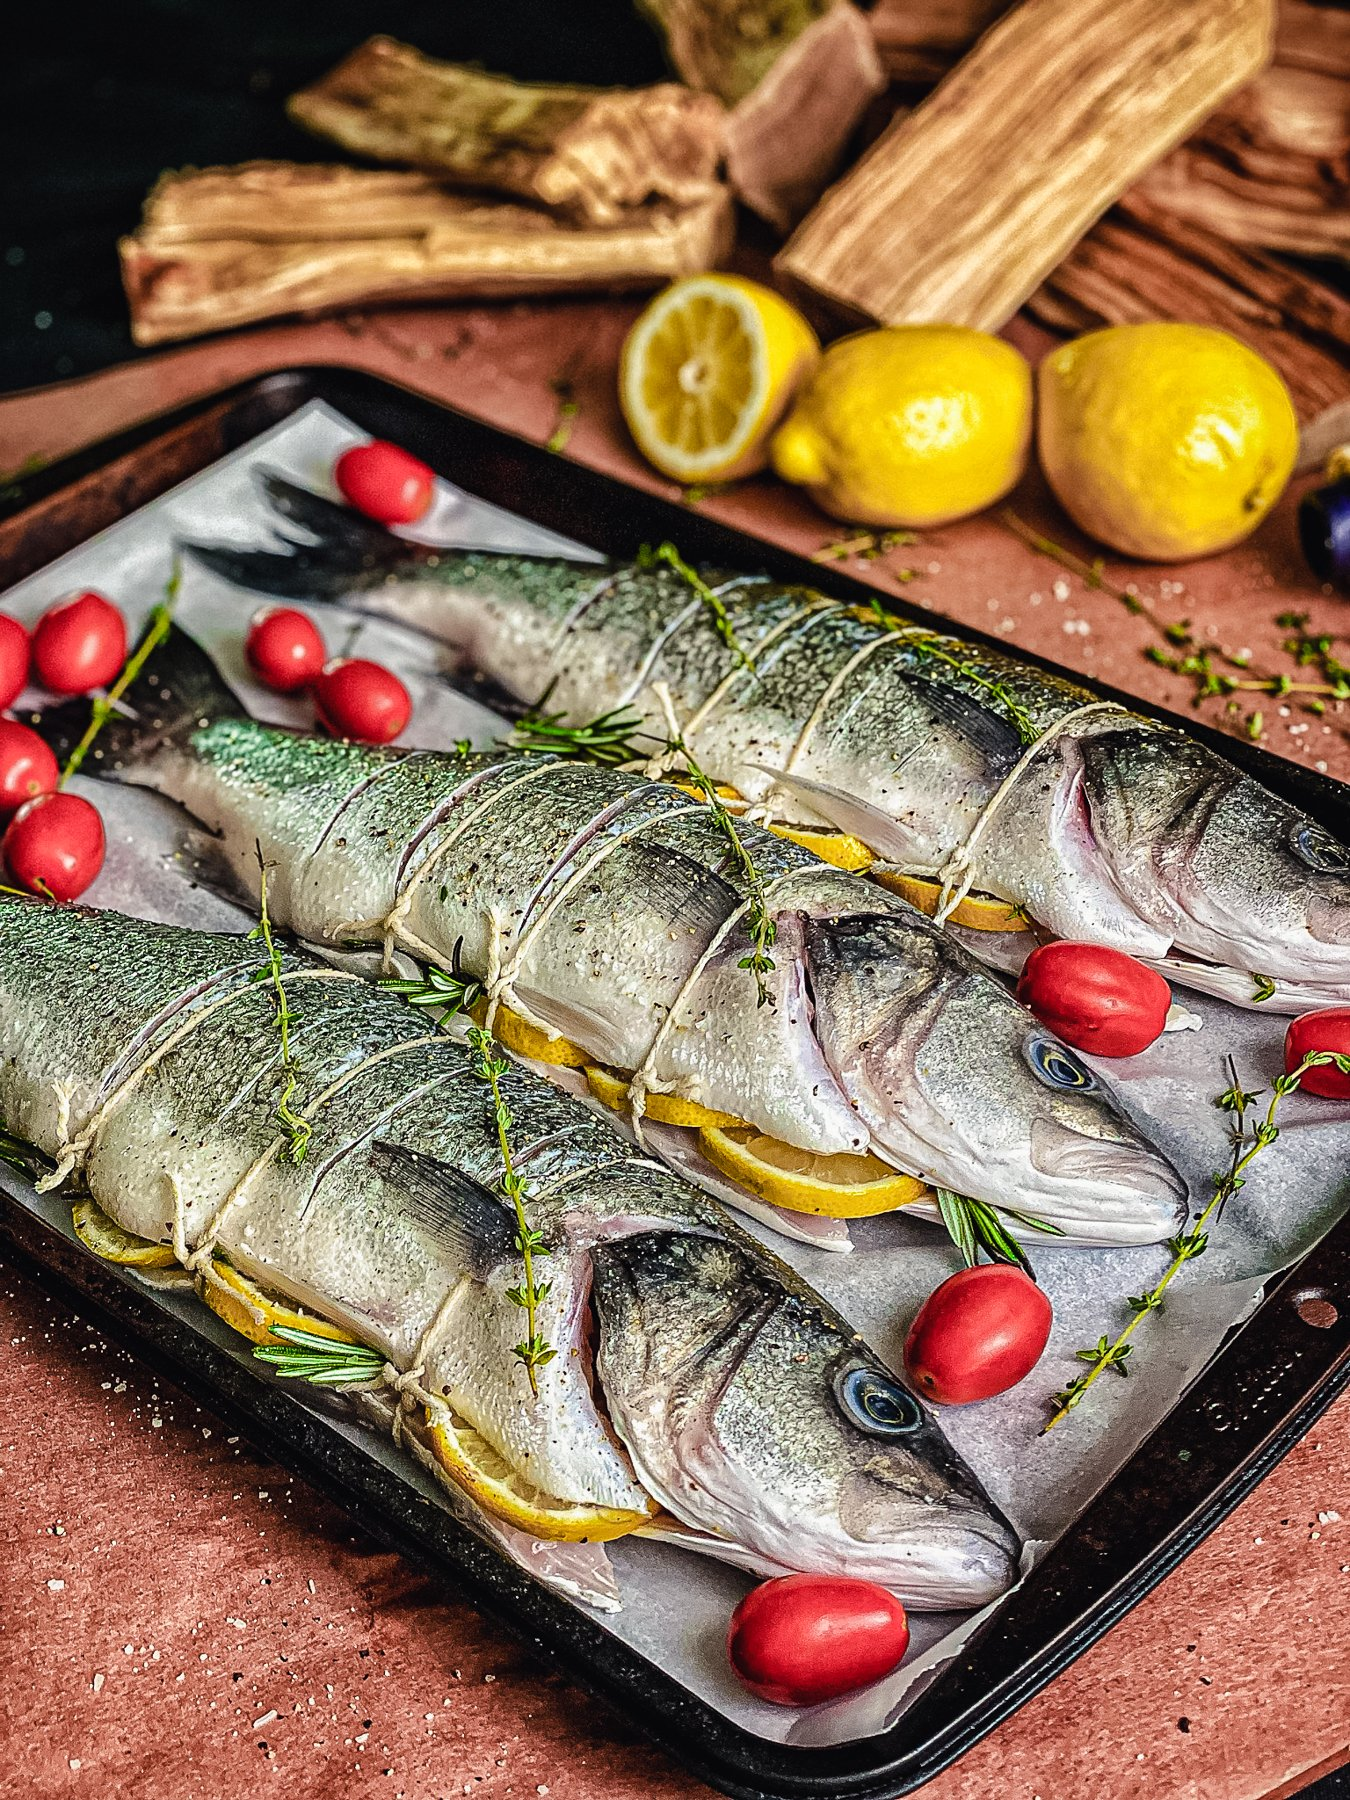 three fish and cherry tomatoes on sheet pan lined with parchment paper, ready to grill